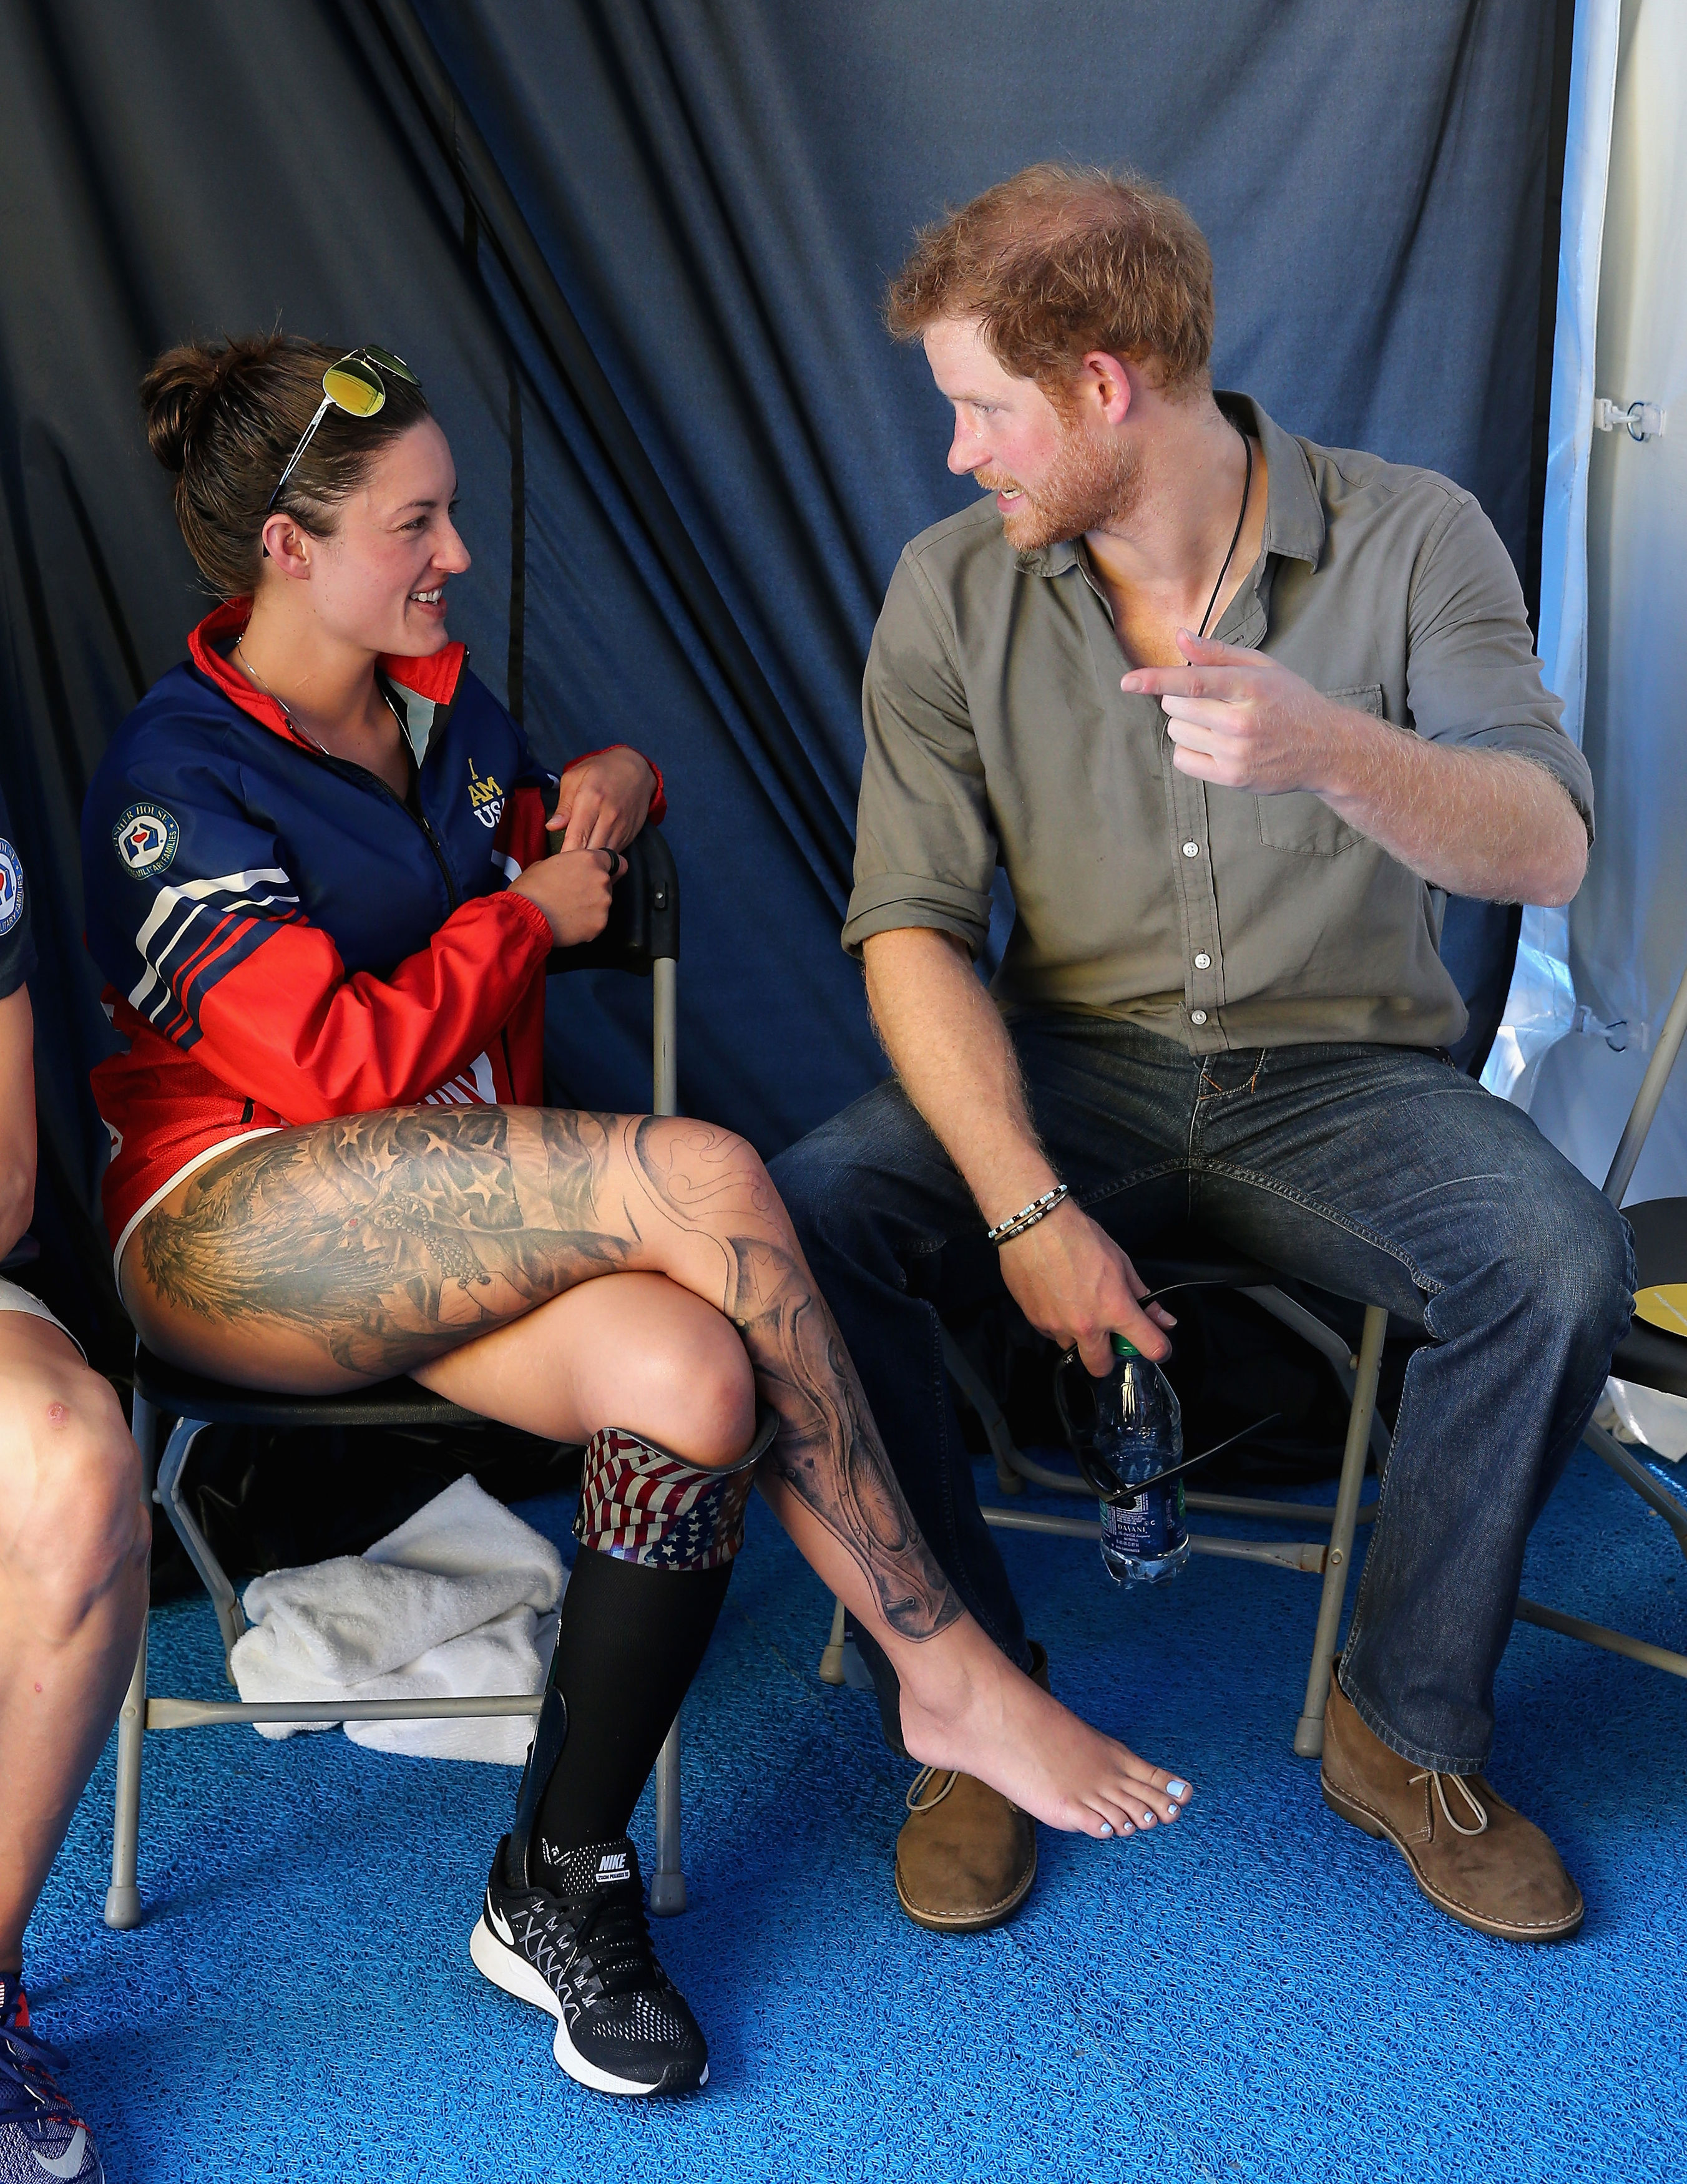 Prince Harry at the Invictus Games 2016